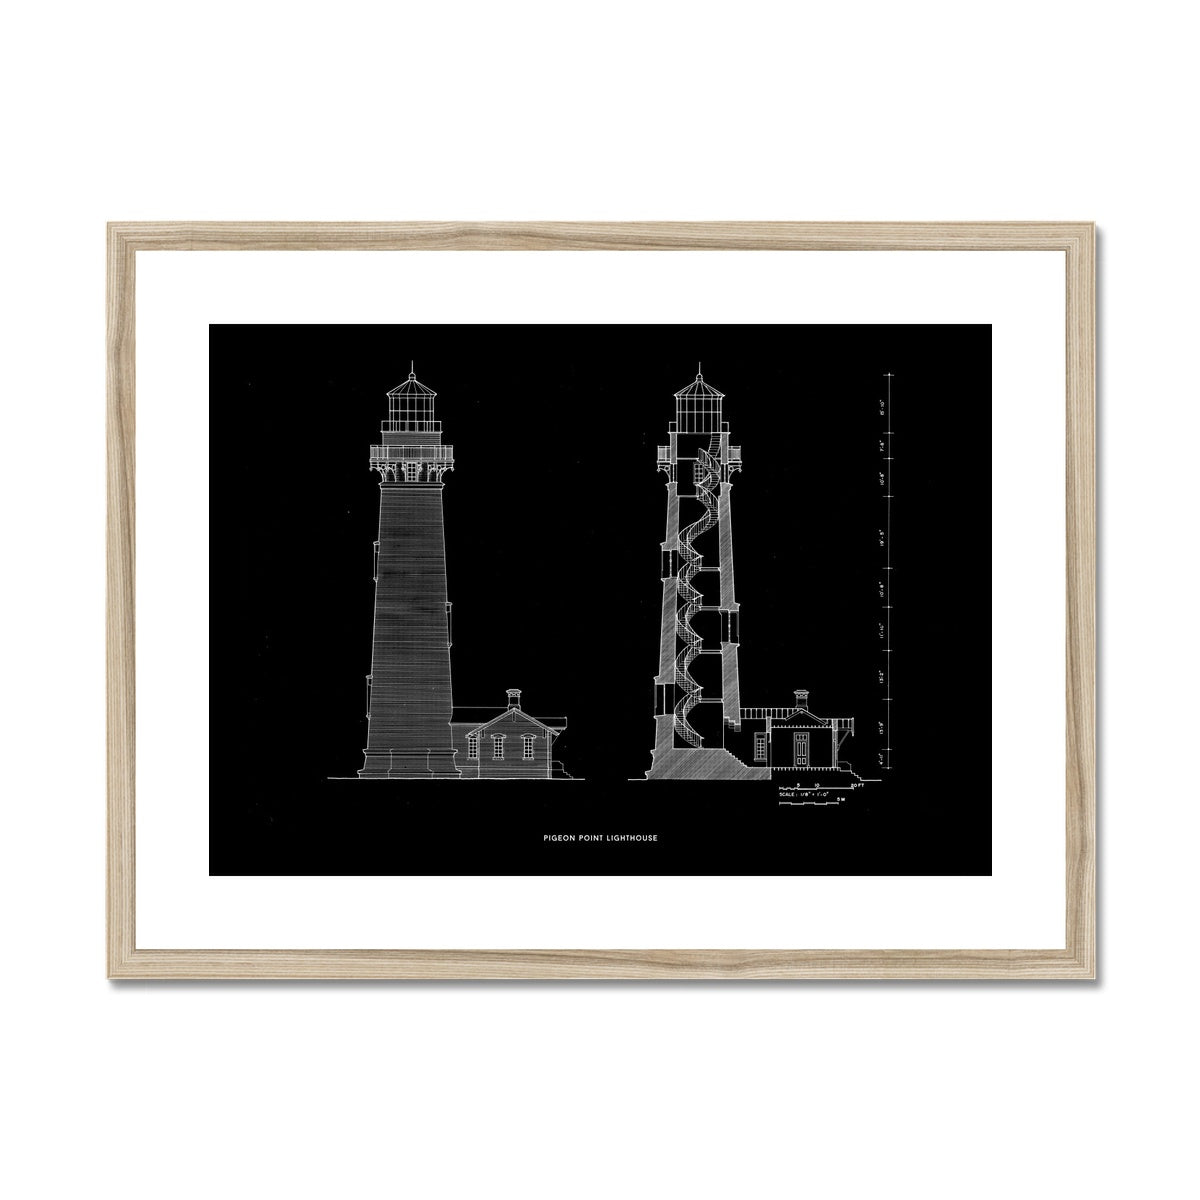 Pigeon Point Lighthouse - Southeast Elevation and Cross Section - Black -  Framed & Mounted Print